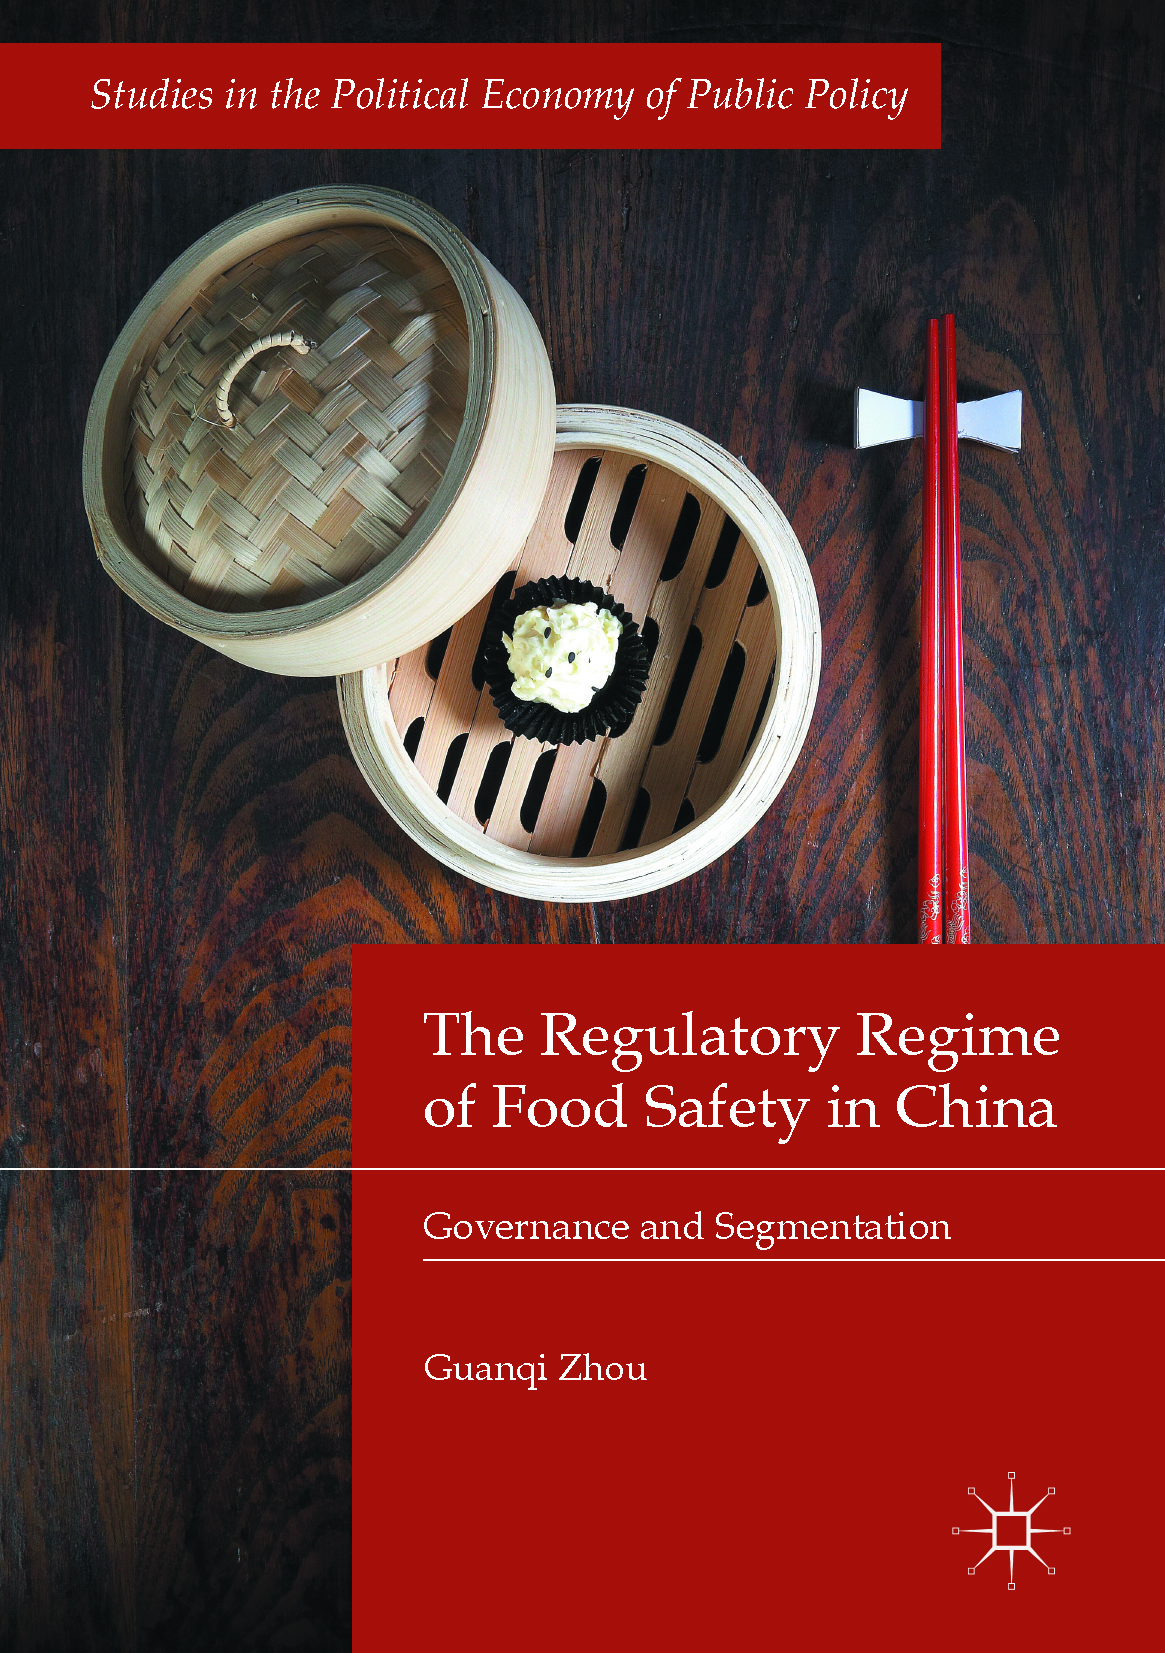 Zhou, Guanqi - The Regulatory Regime of Food Safety in China, ebook